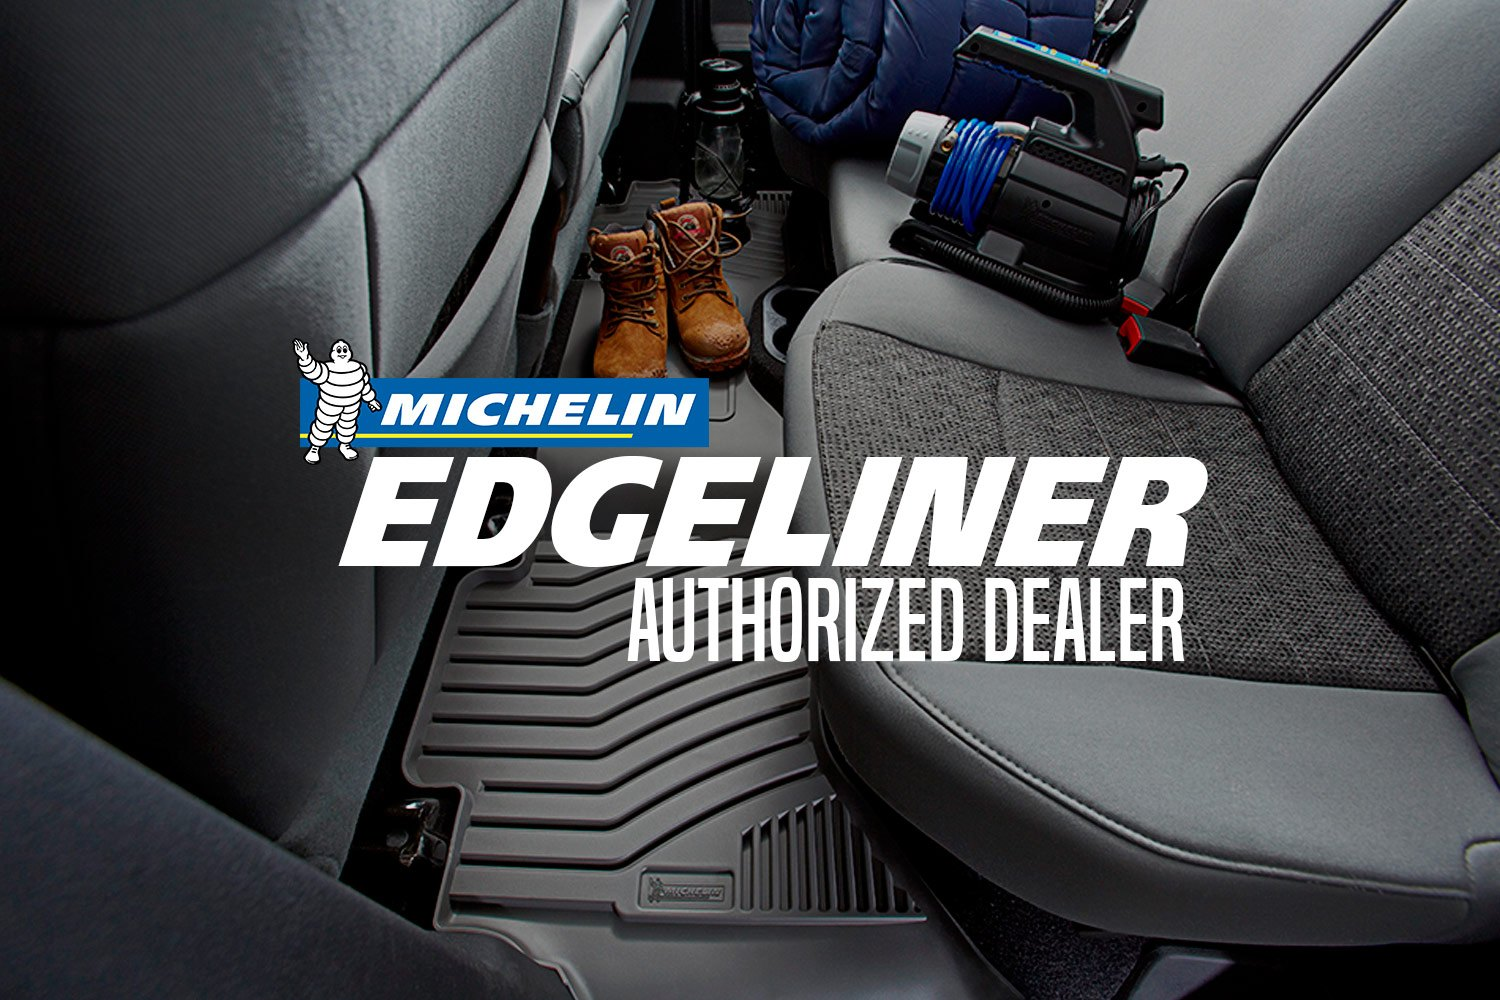 Rubber floor mats kia sorento -  Michelin Edgeliner Authorized Dealer